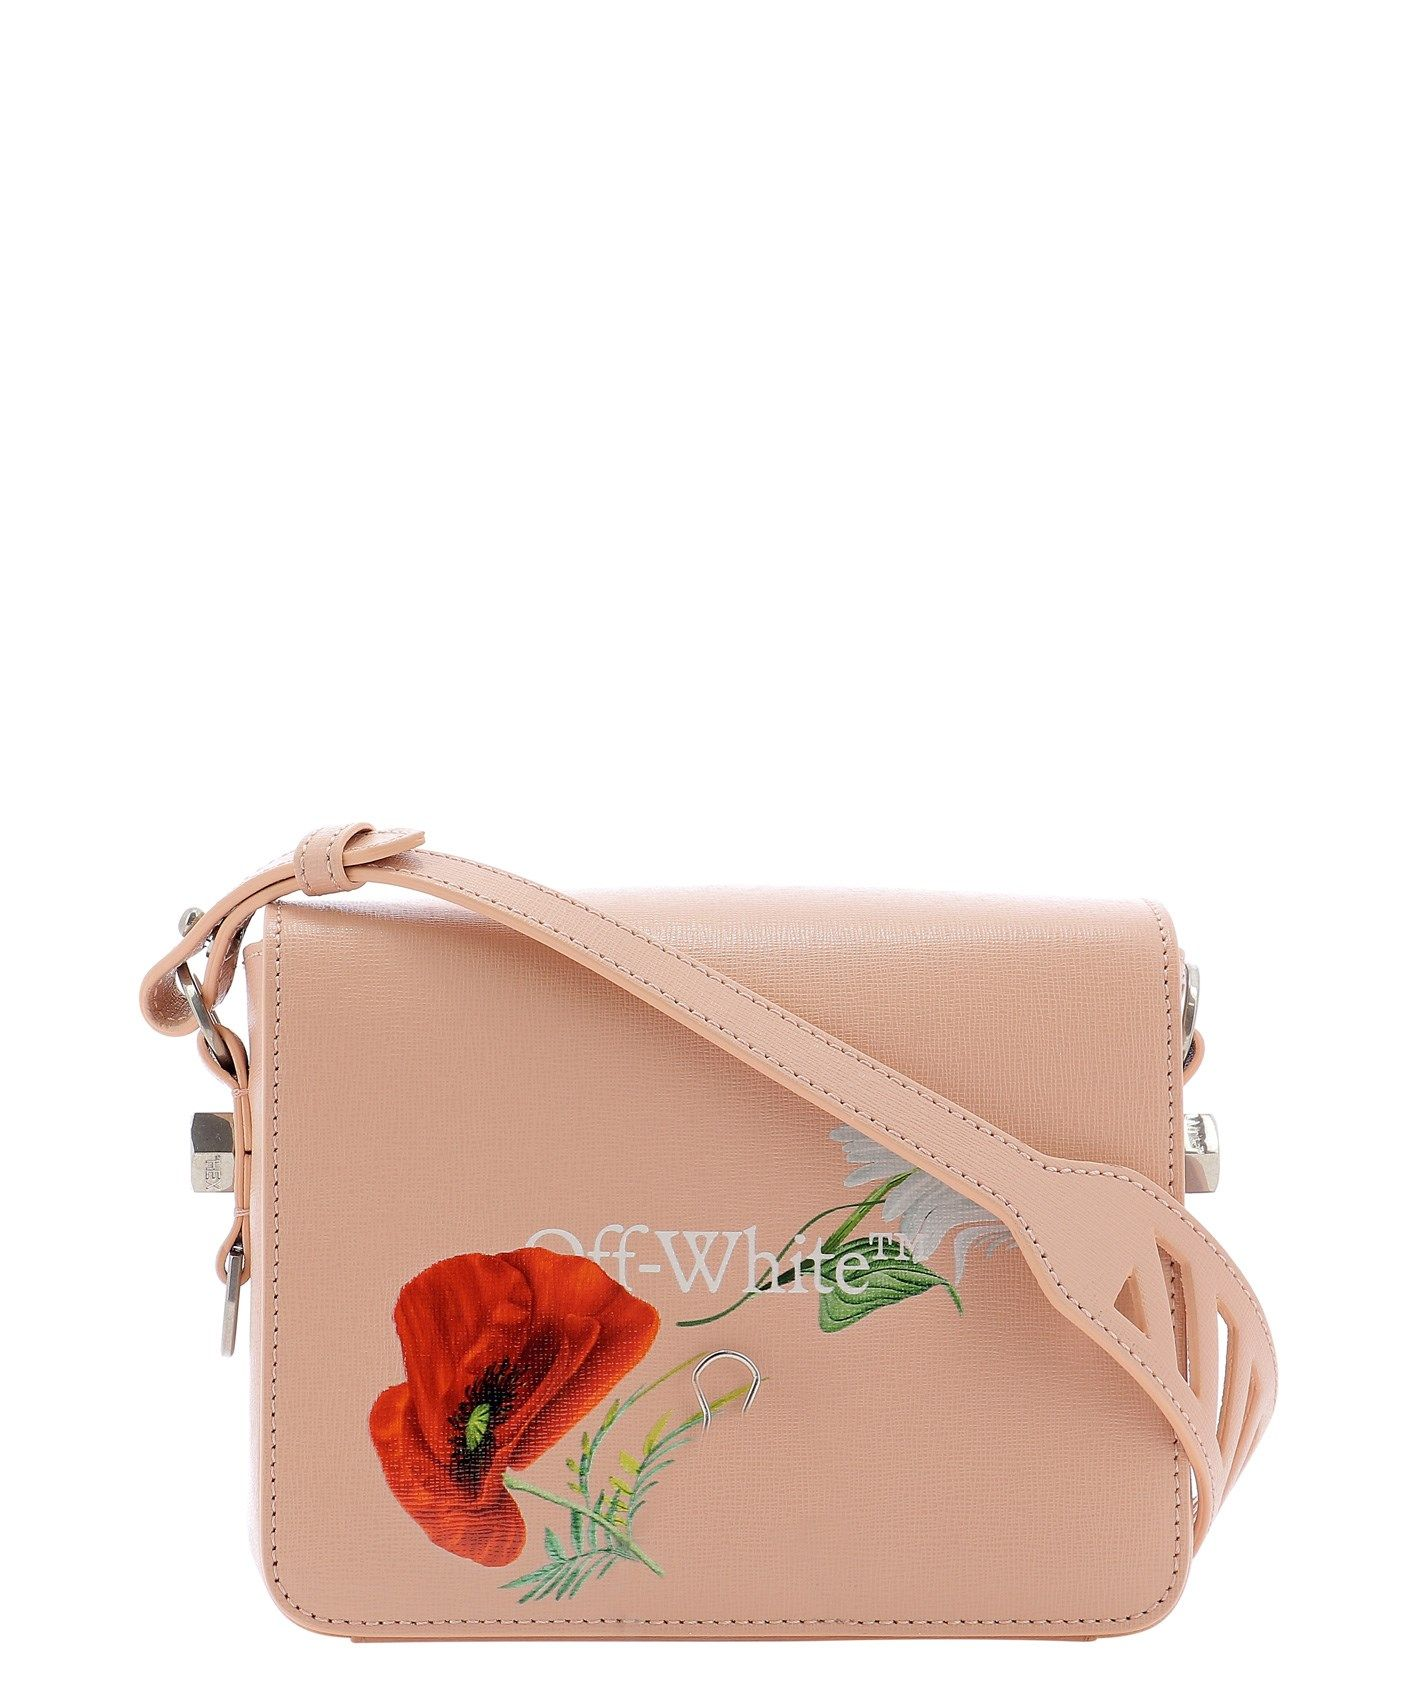 Off-White OFF-WHITE WOMEN'S PINK OTHER MATERIALS SHOULDER BAG